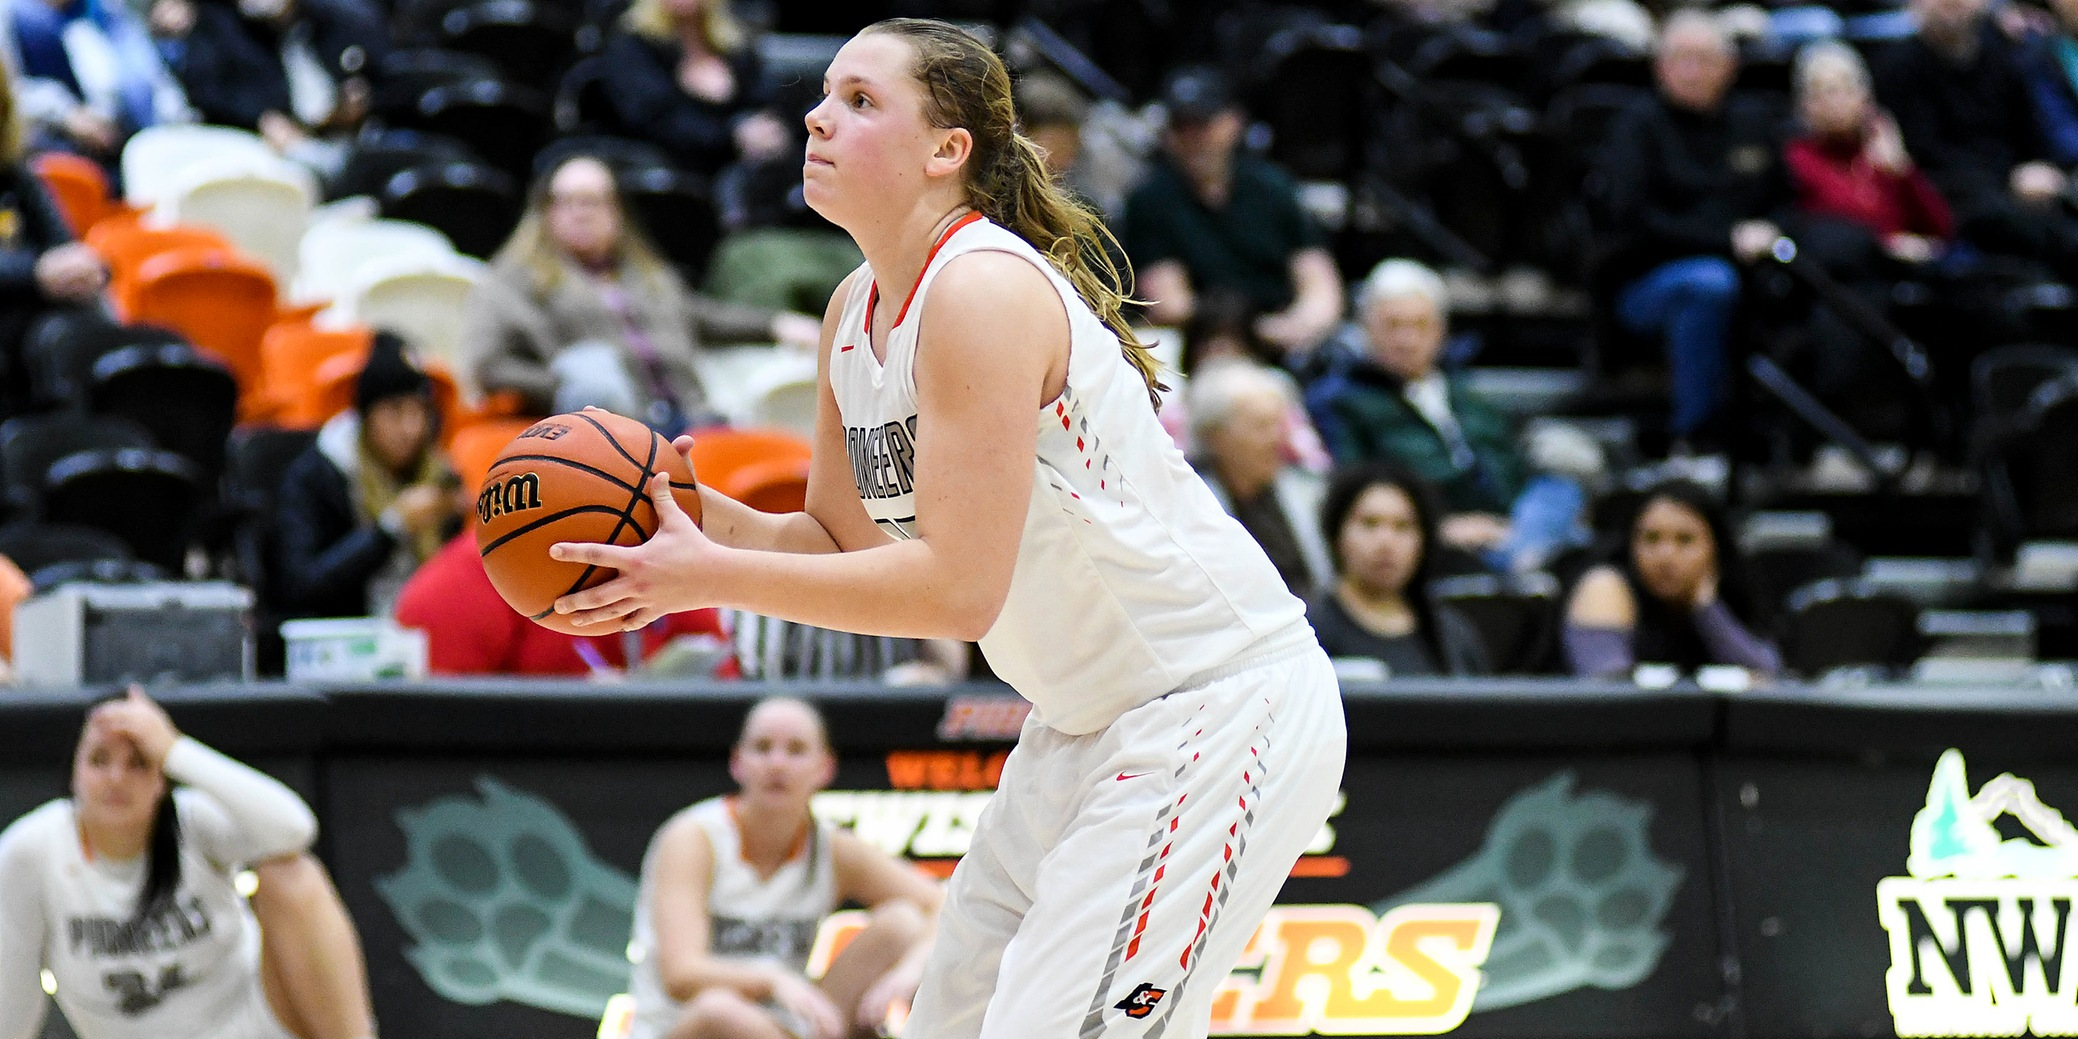 Pios fail to keep momentum in final quarter, lose to Willamette